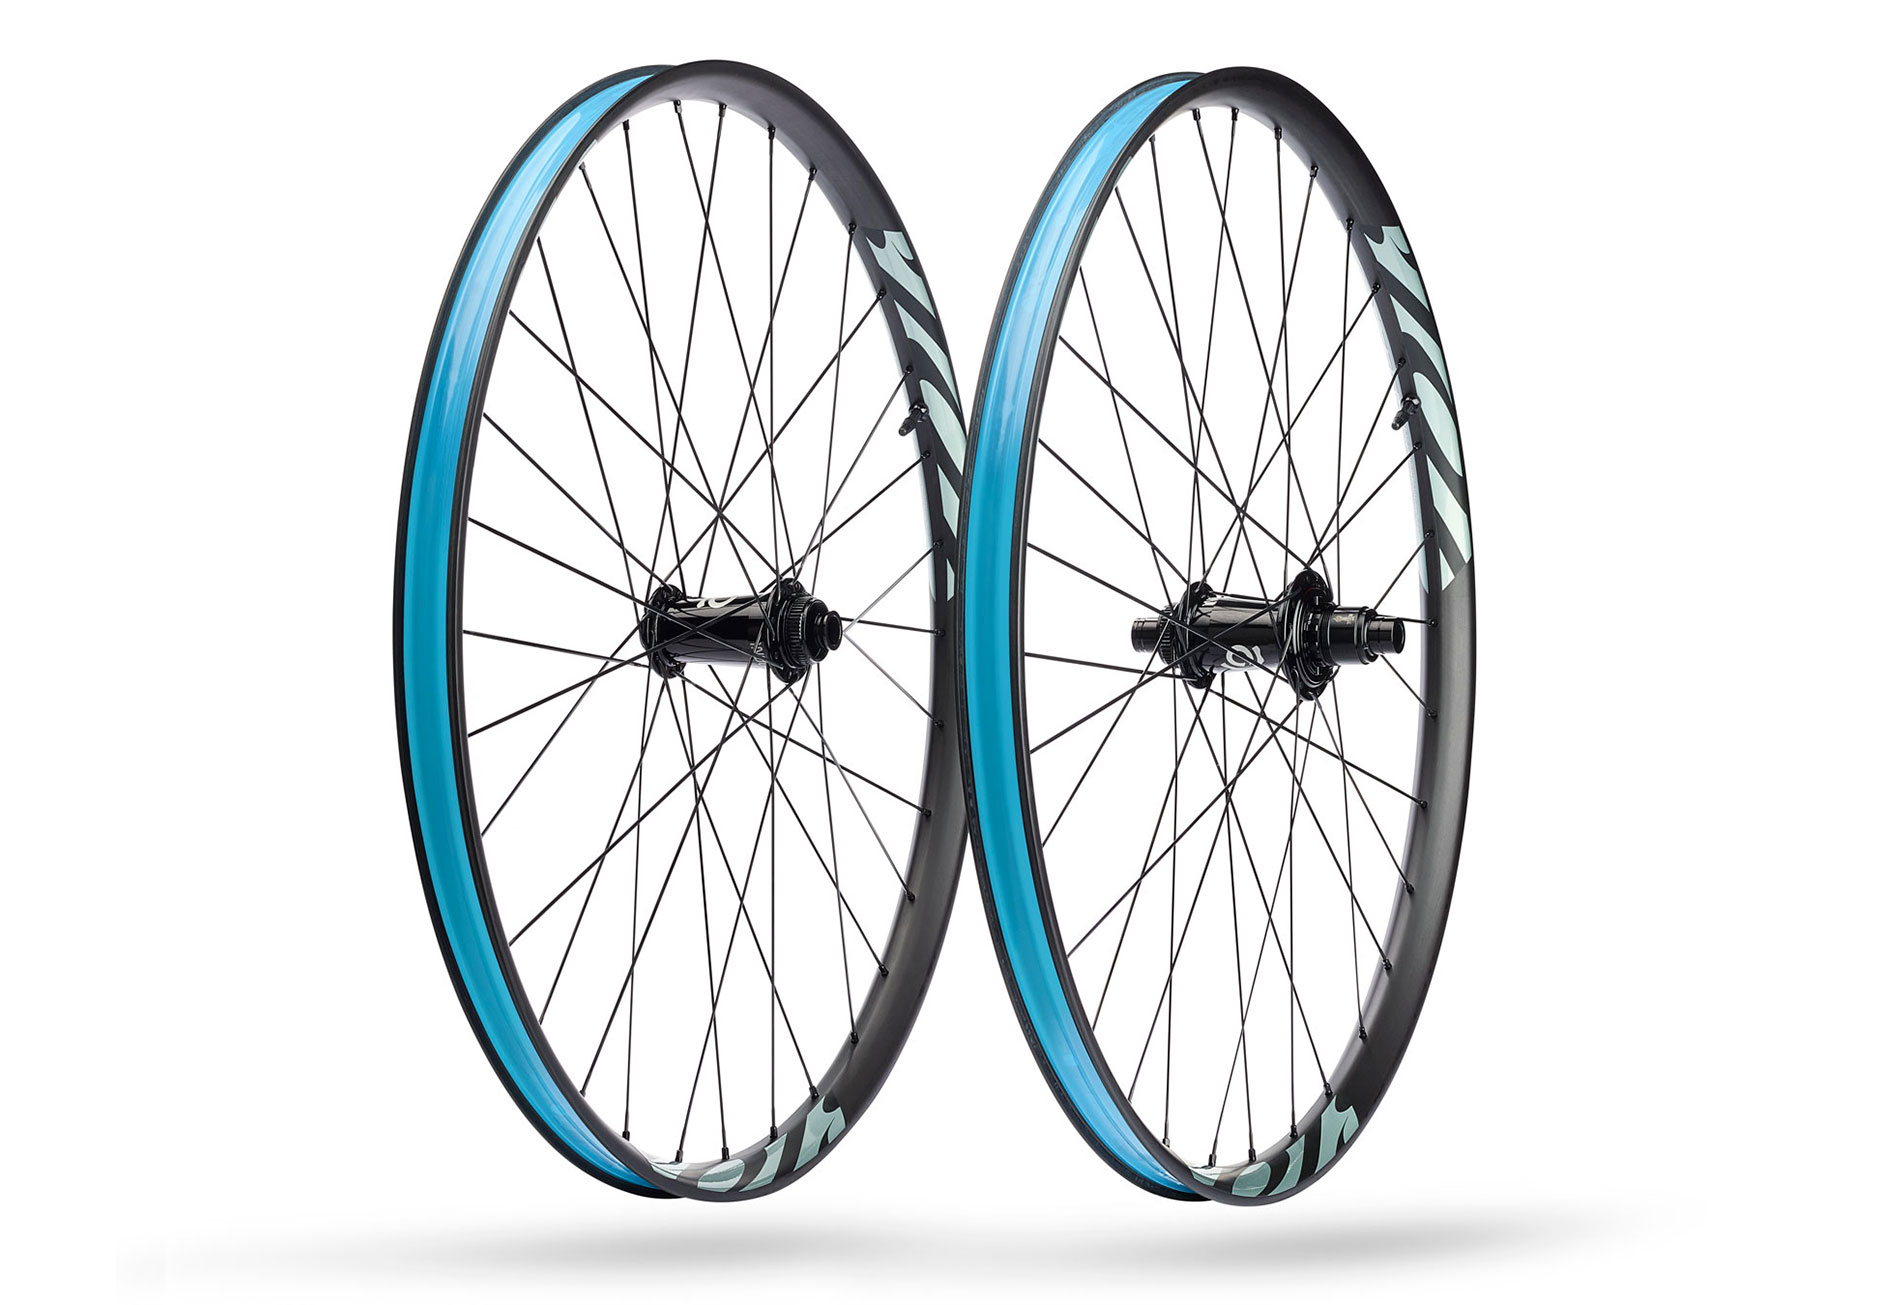 IBIS 735 Carbon Wheelset - Industry 9 hubs